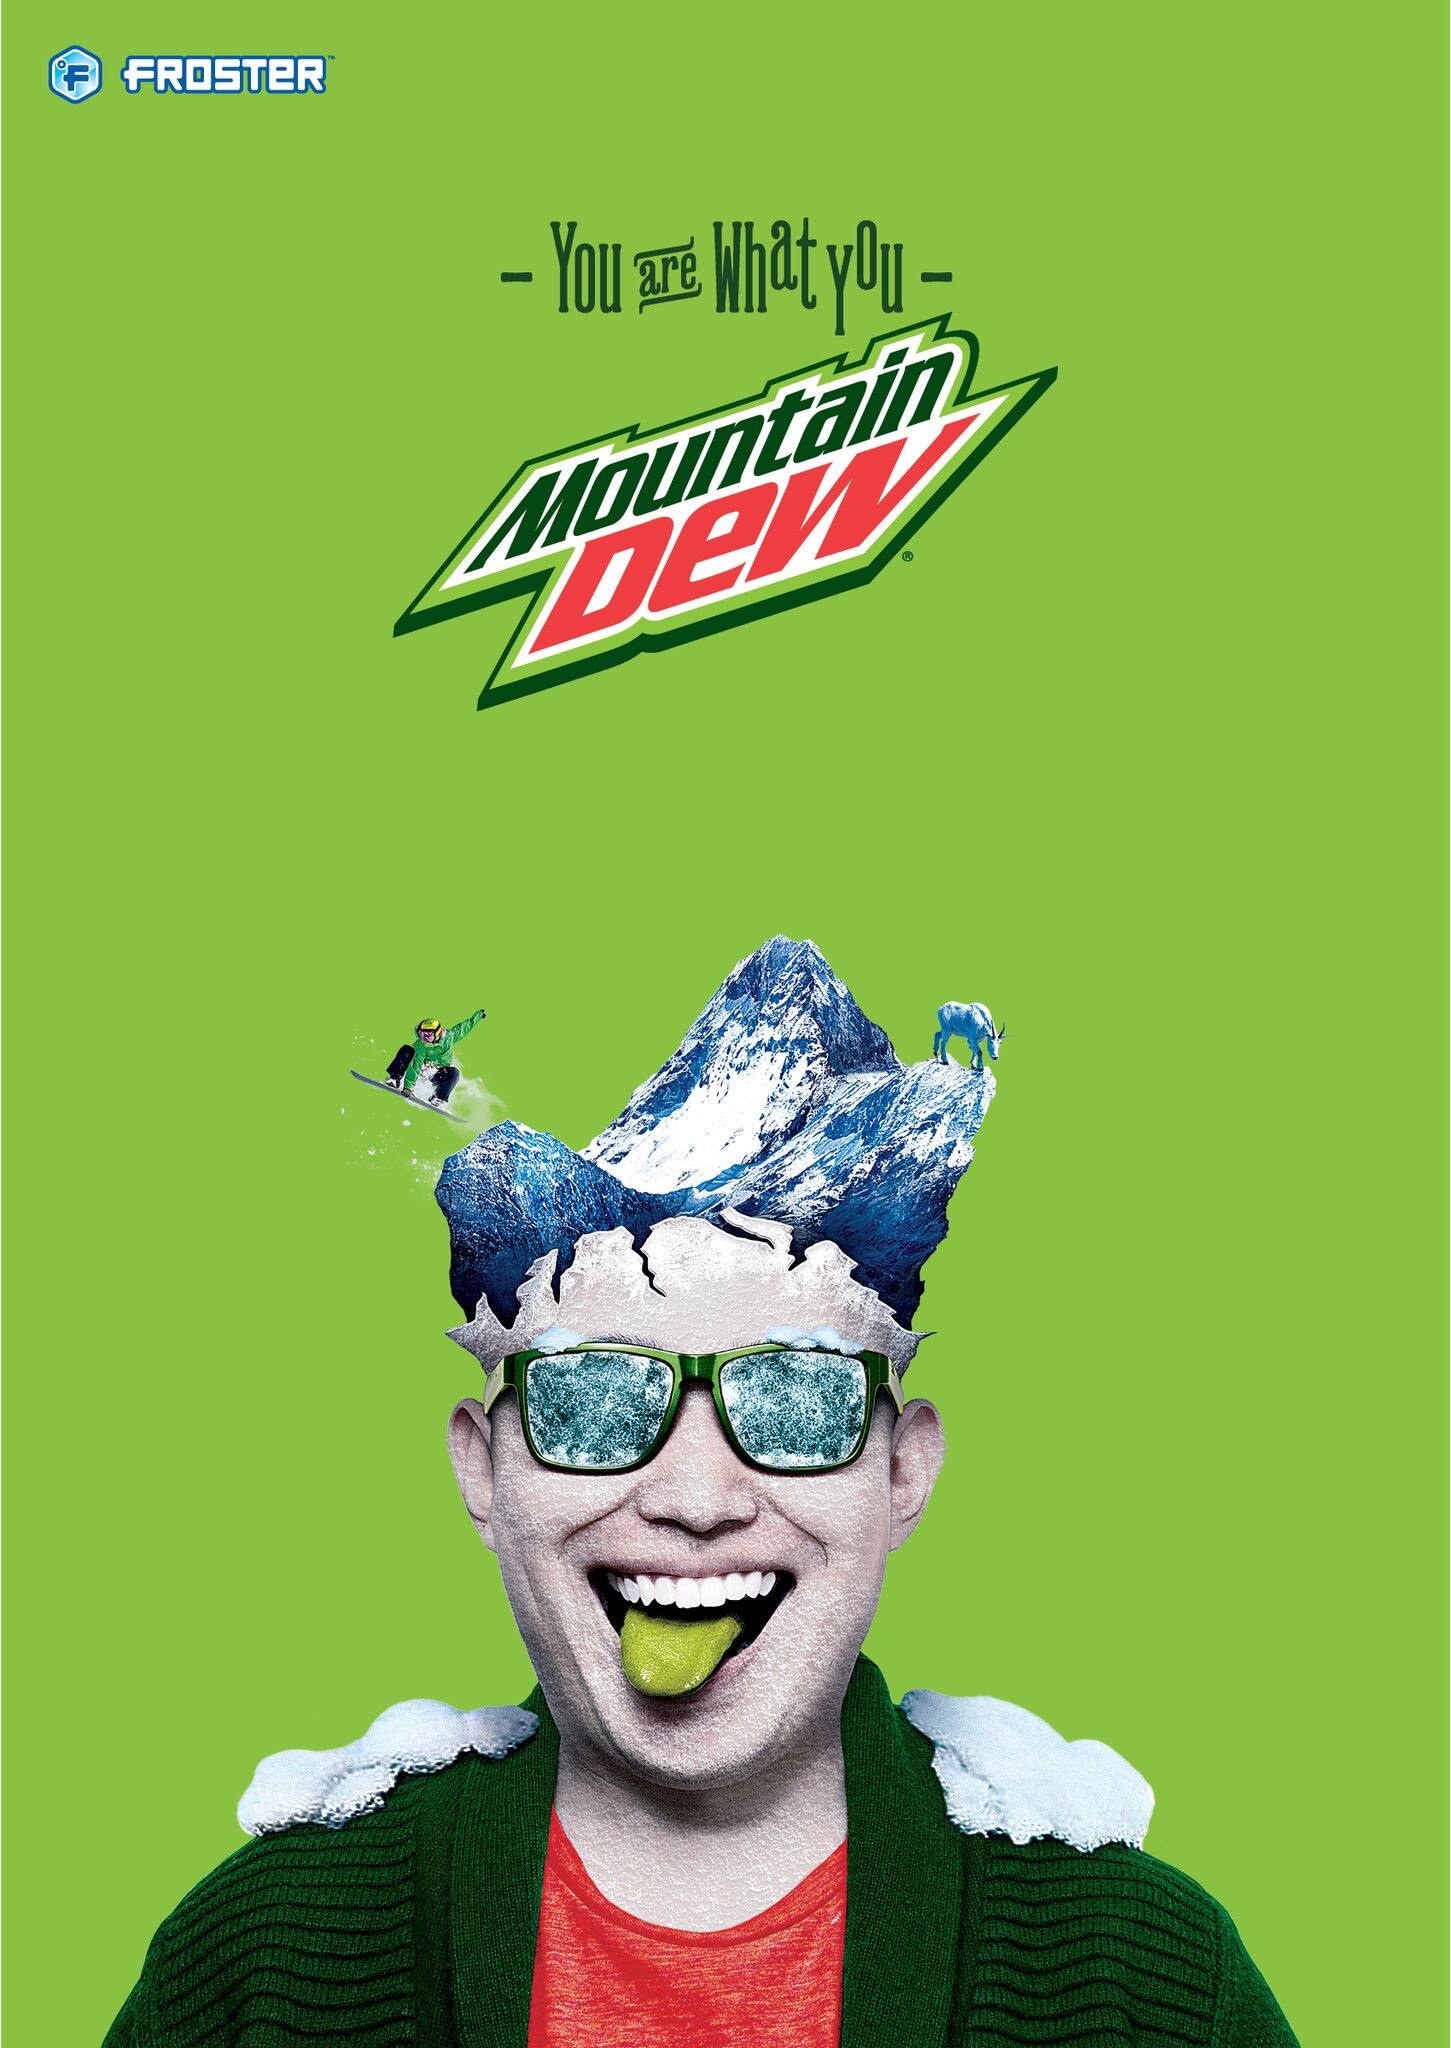 Mac's Froster - Mountain Dew poster